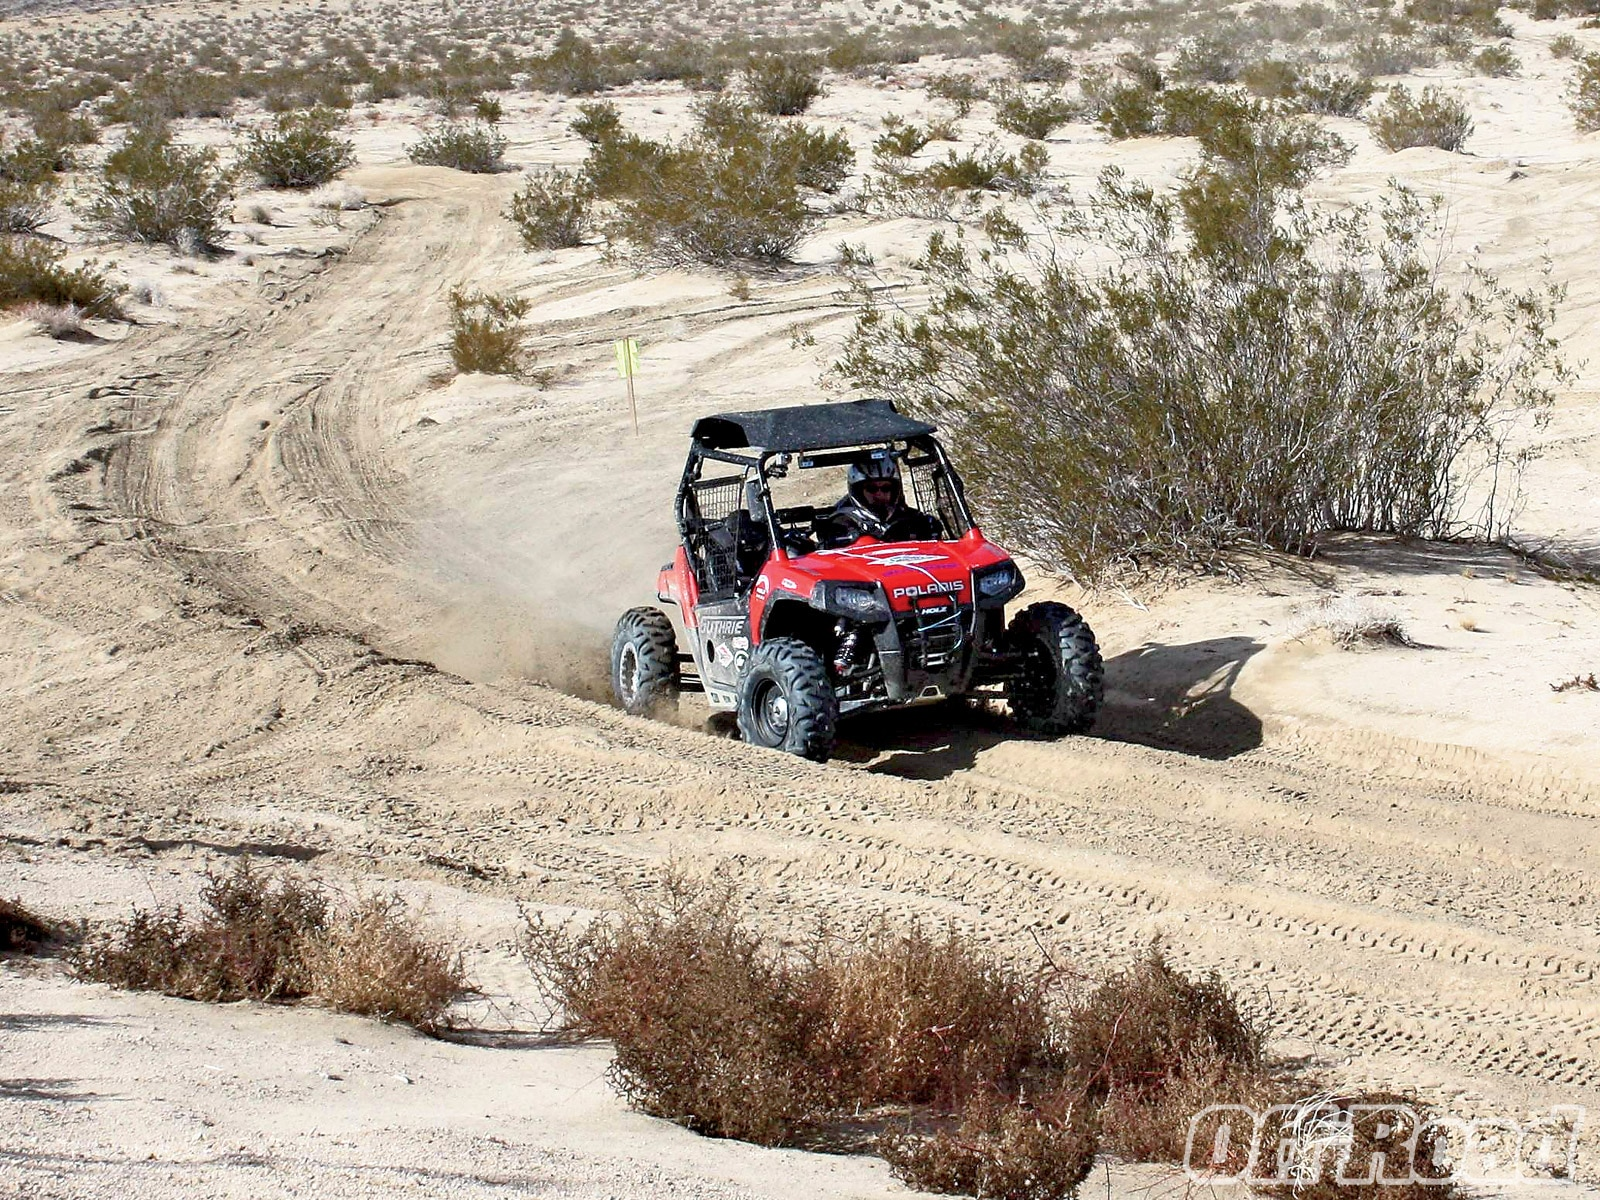 1006or 22 +king of the hammers 2010+polaris rzr